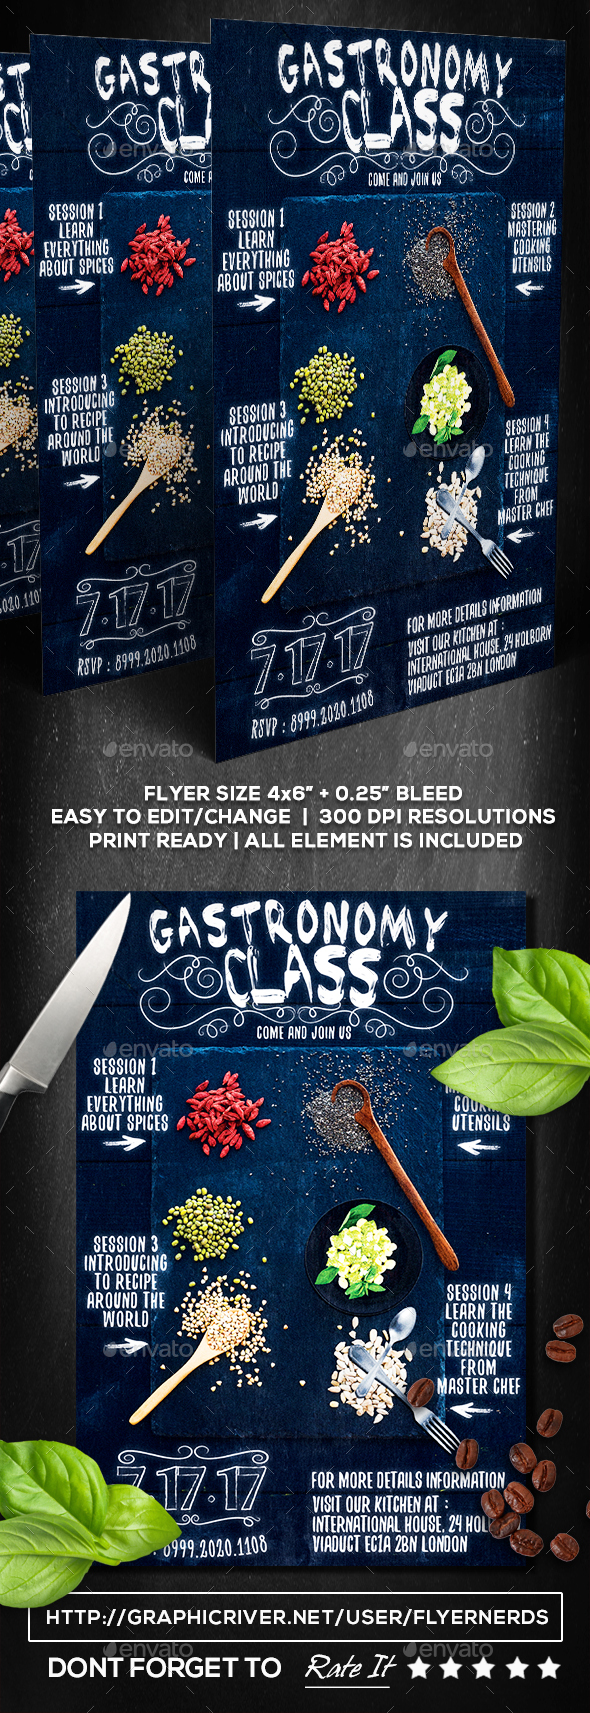 Gastronomy Class Flyer